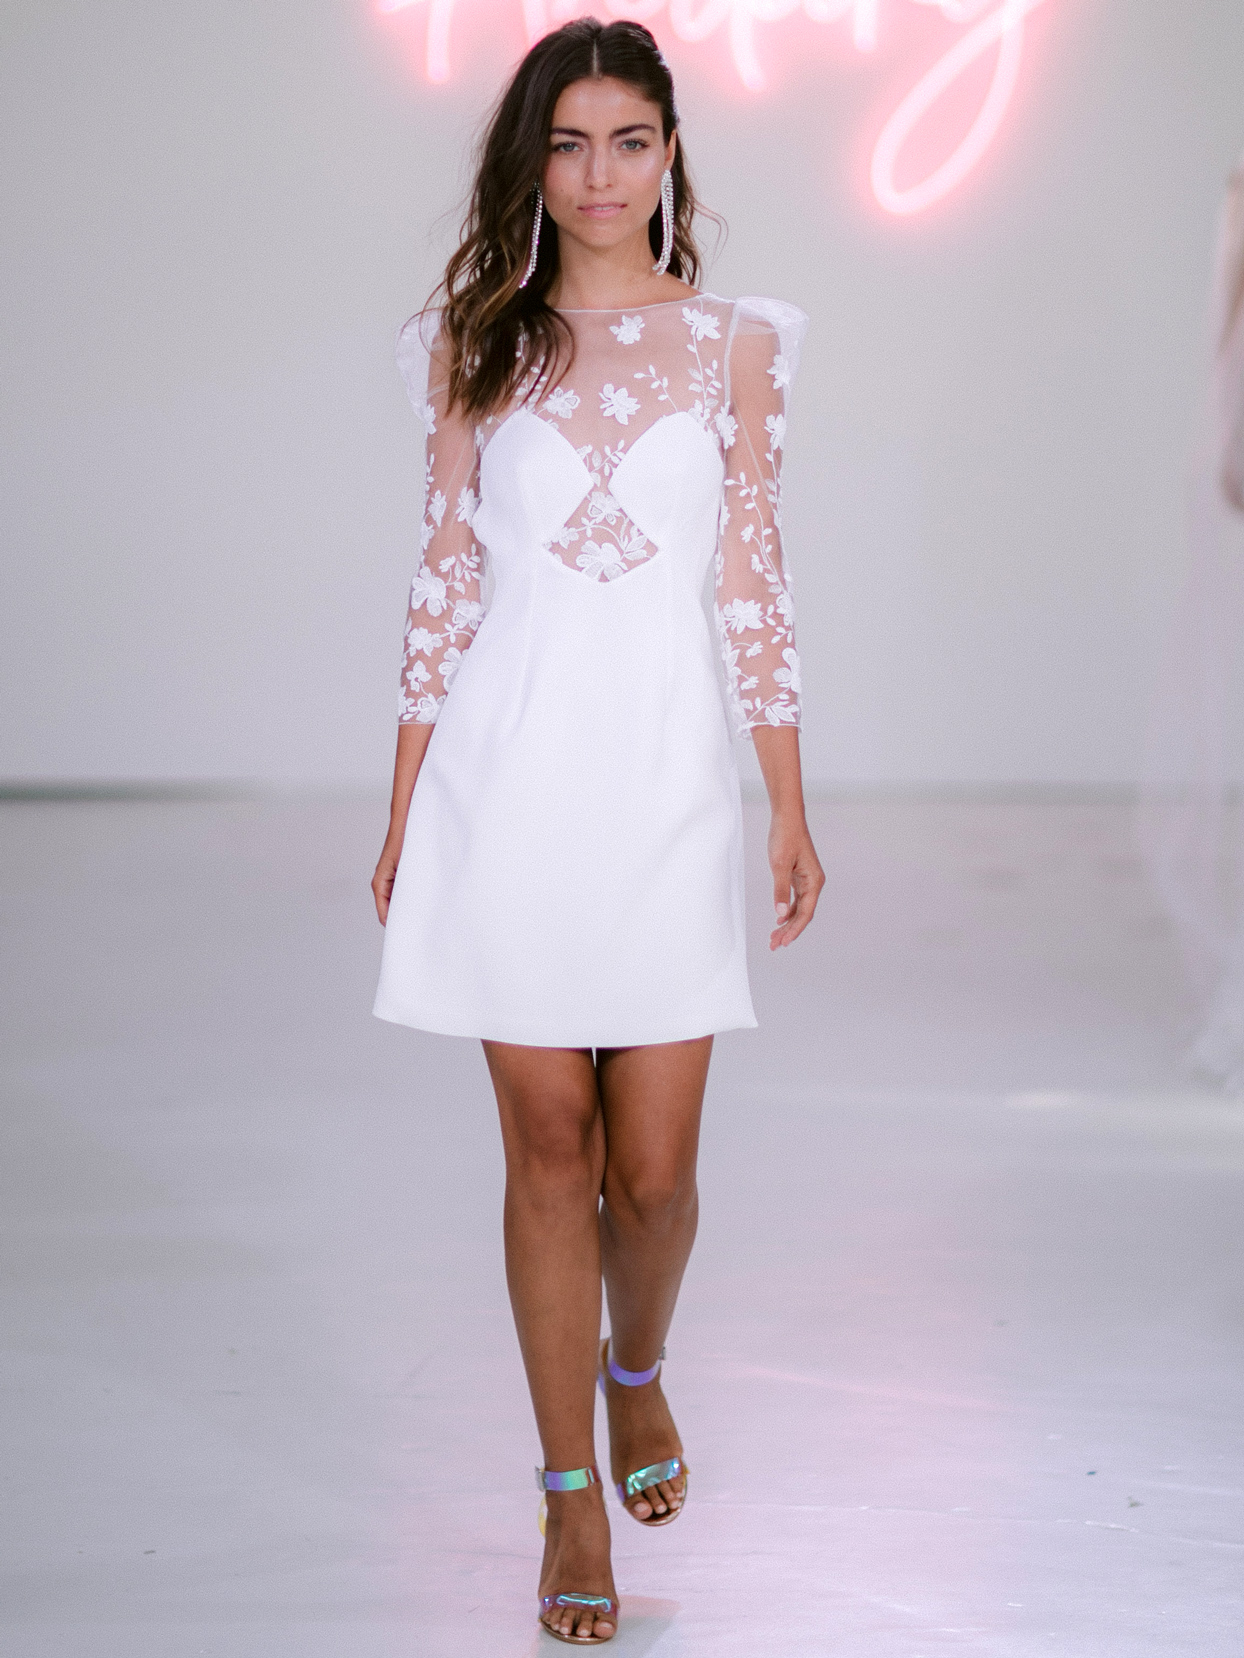 Rime Arodaky X The Mews Bridal three-quarter sheet lace sleeves mini wedding dress fall 2020